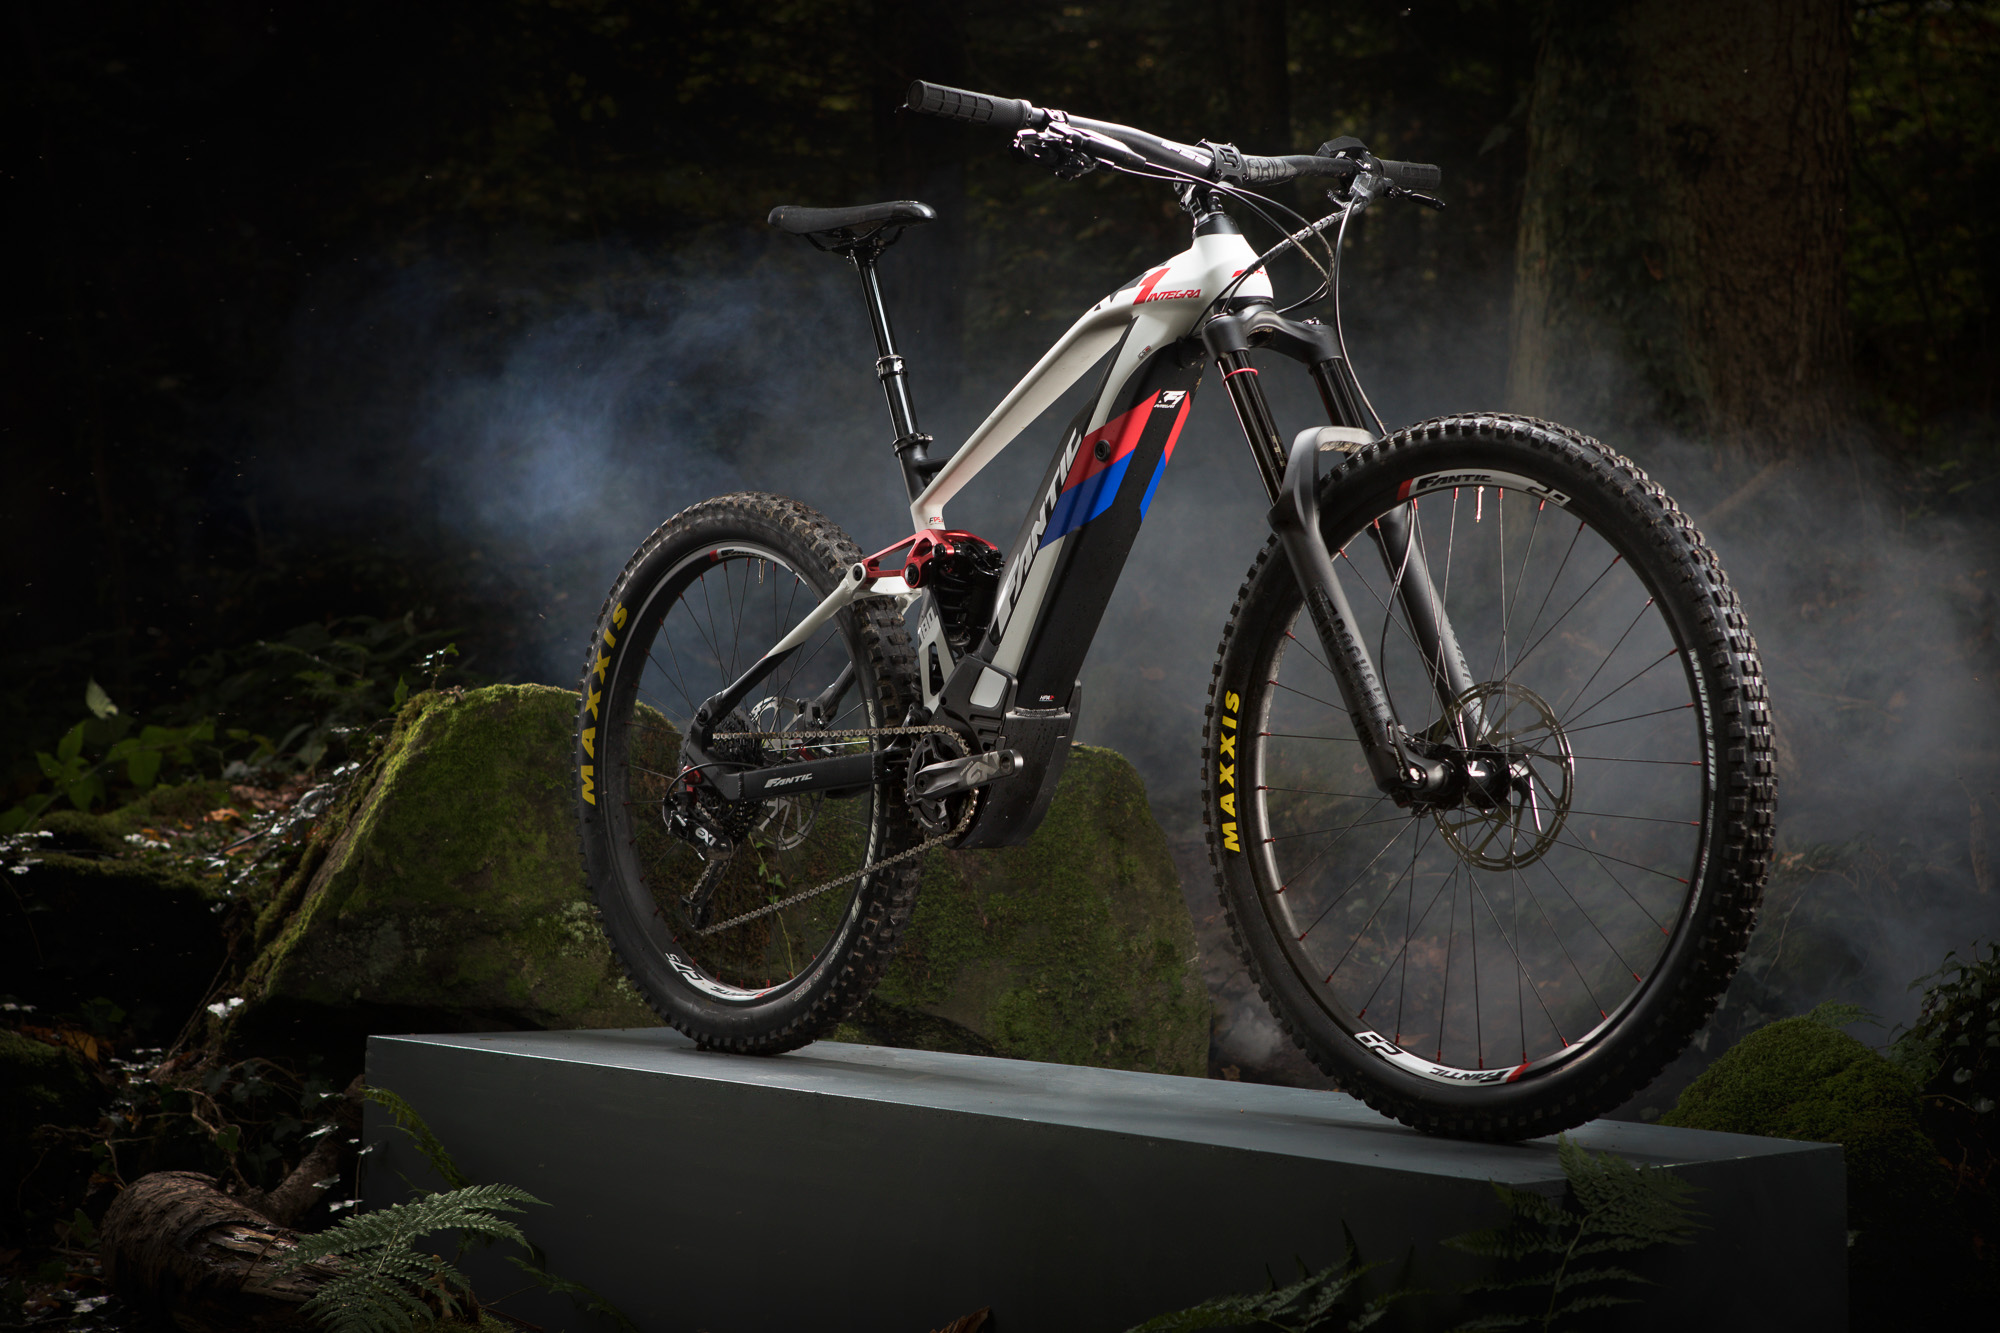 Fantic XF1 INTEGRA ENDURO 180 - Design   Innovation Award 8b529ef14